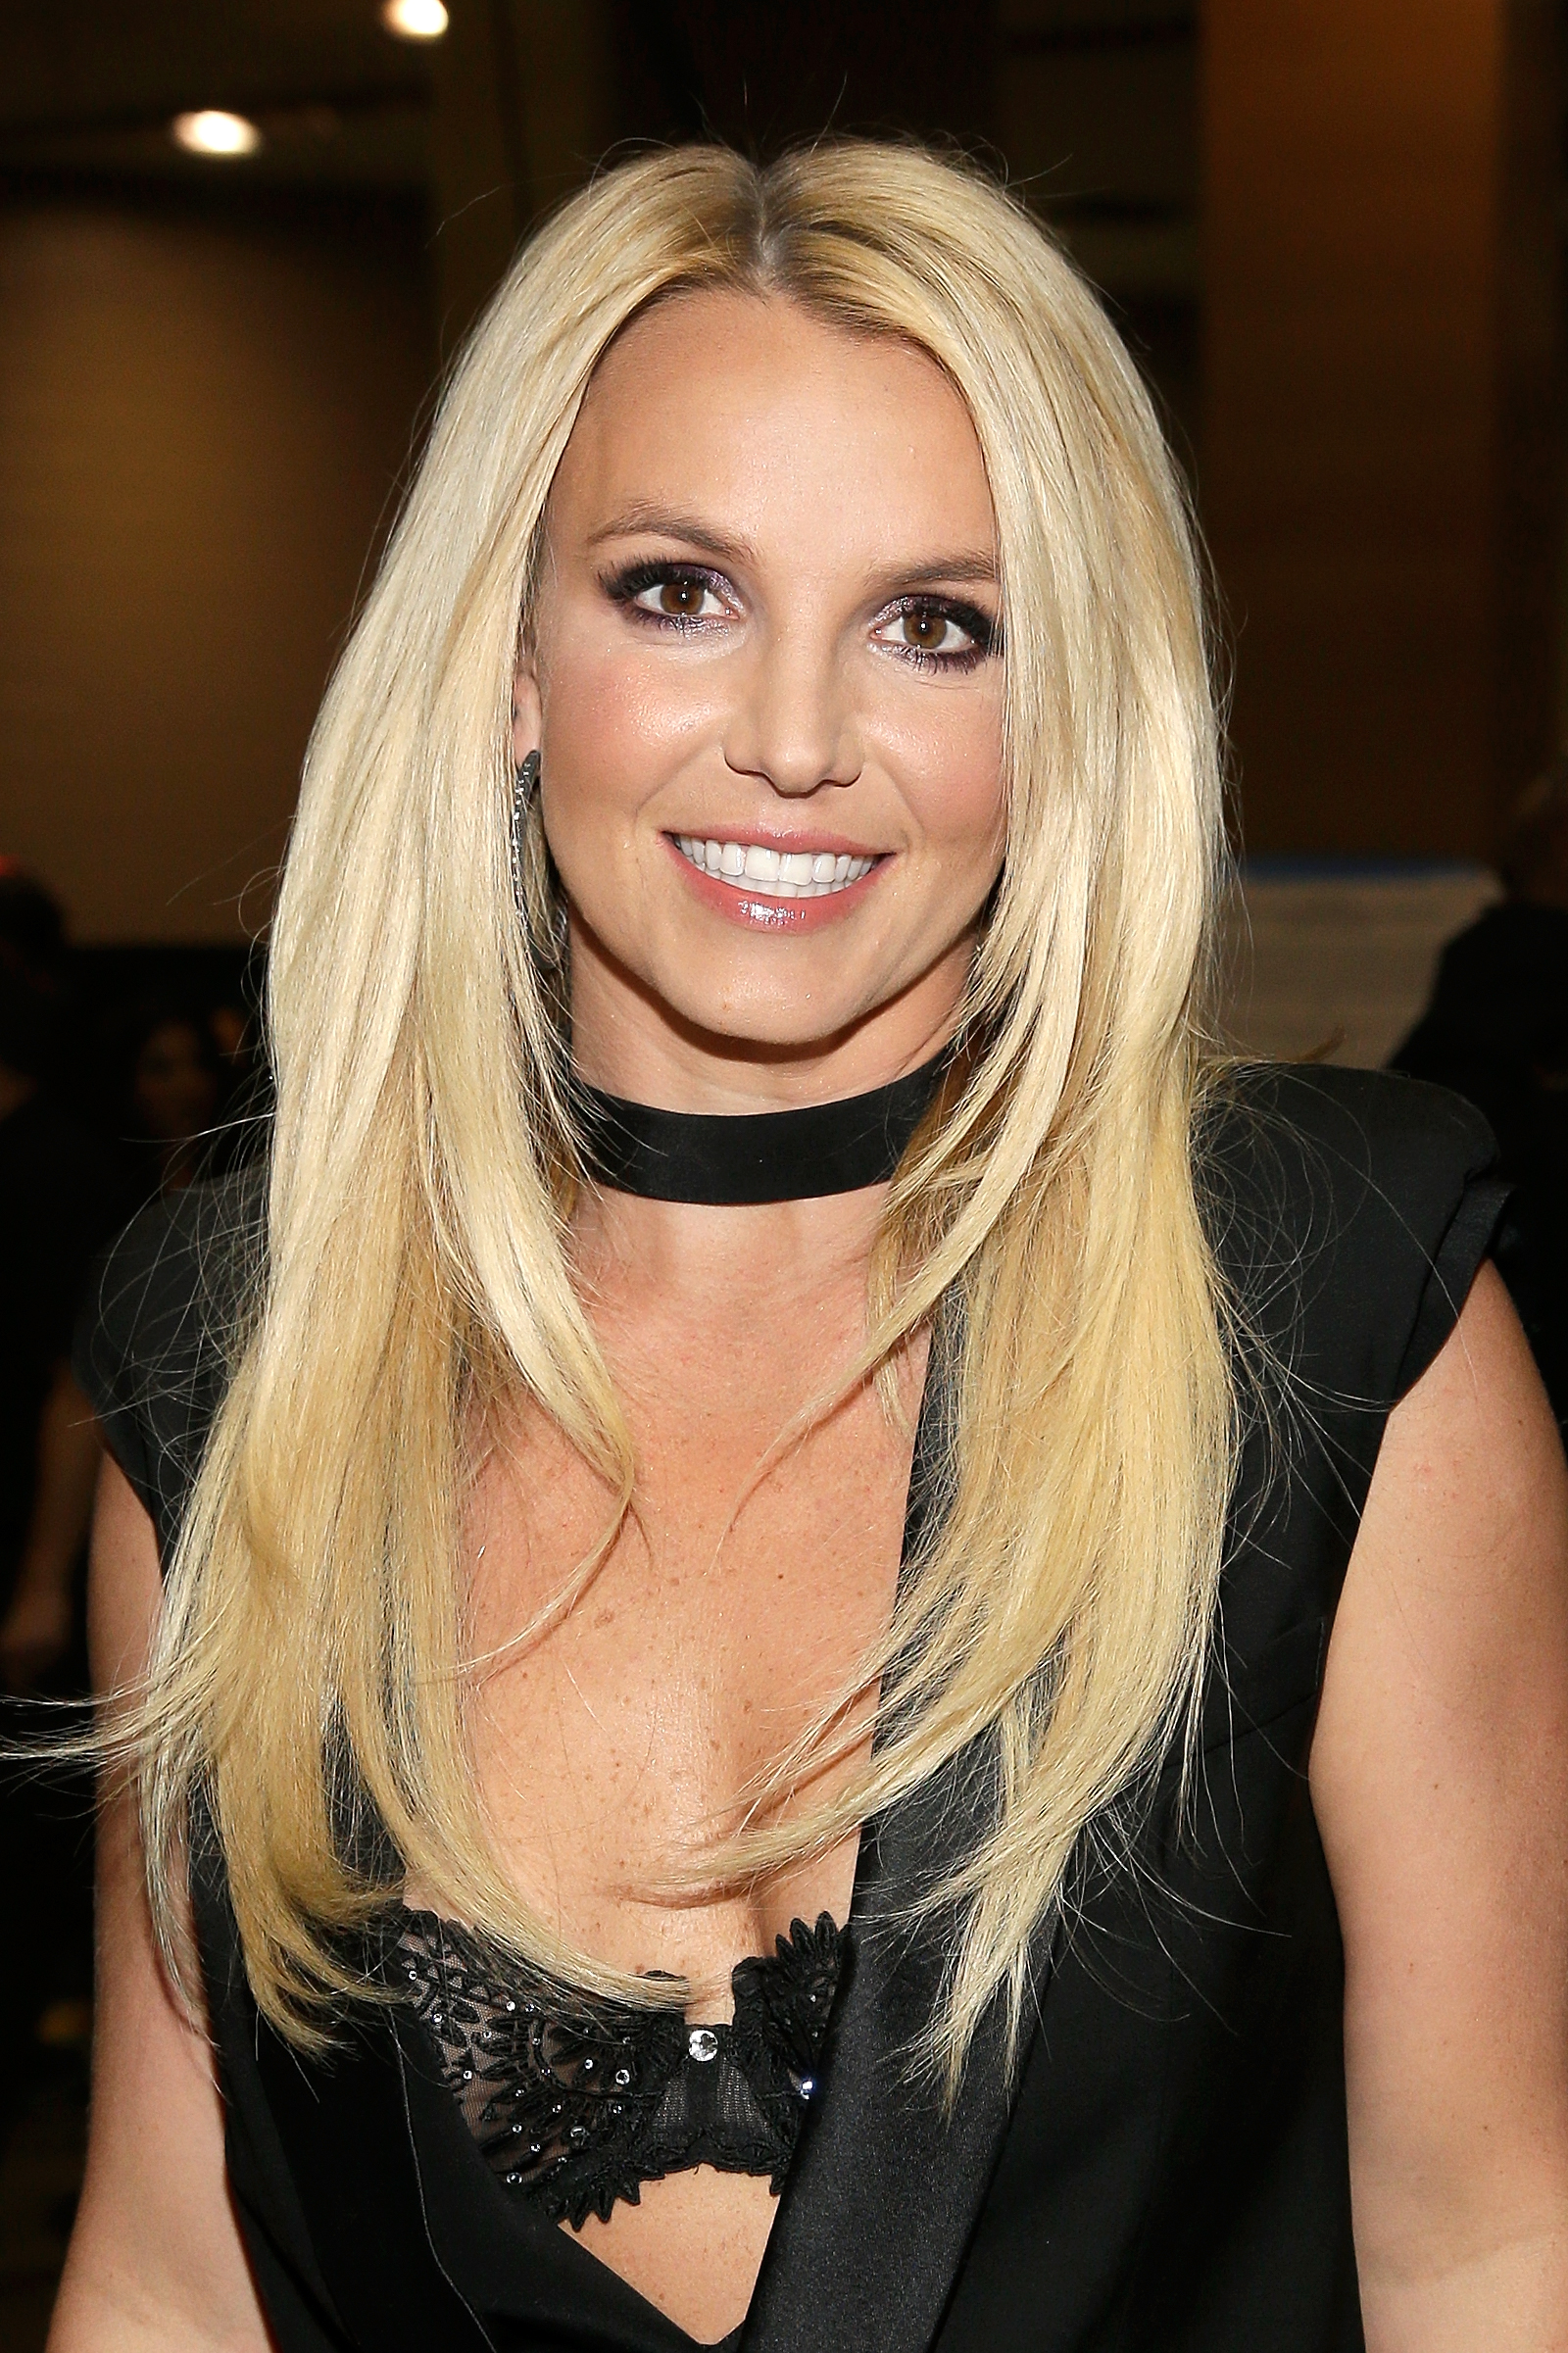 Watch Britney Spears dance around in a tiny bikini, reach new levels of sexiness